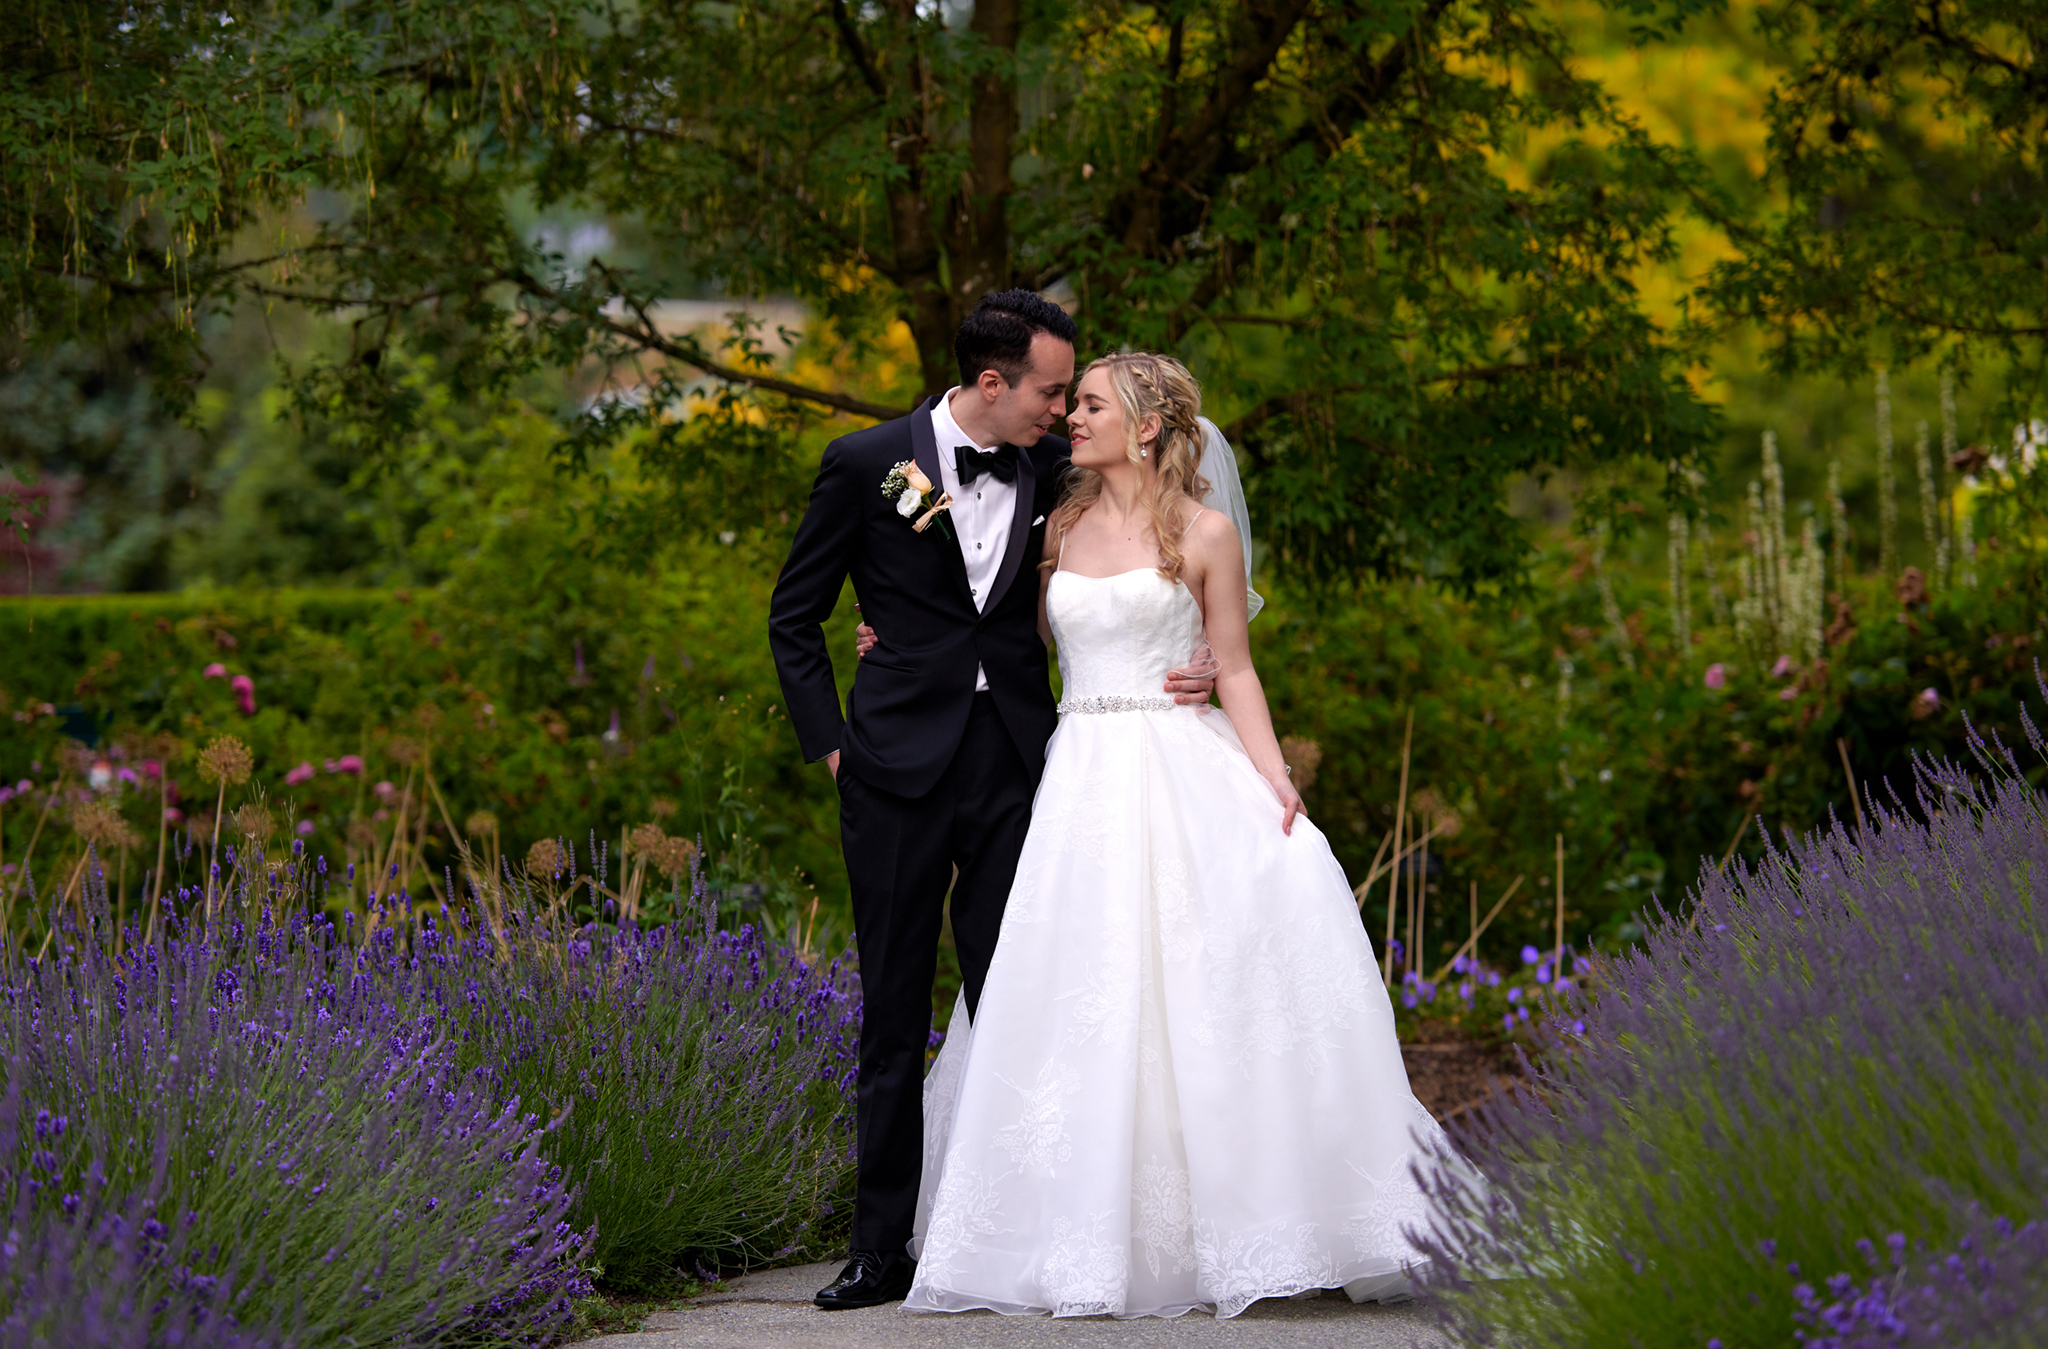 Wedding photographer Vancouver at Van dusen garden